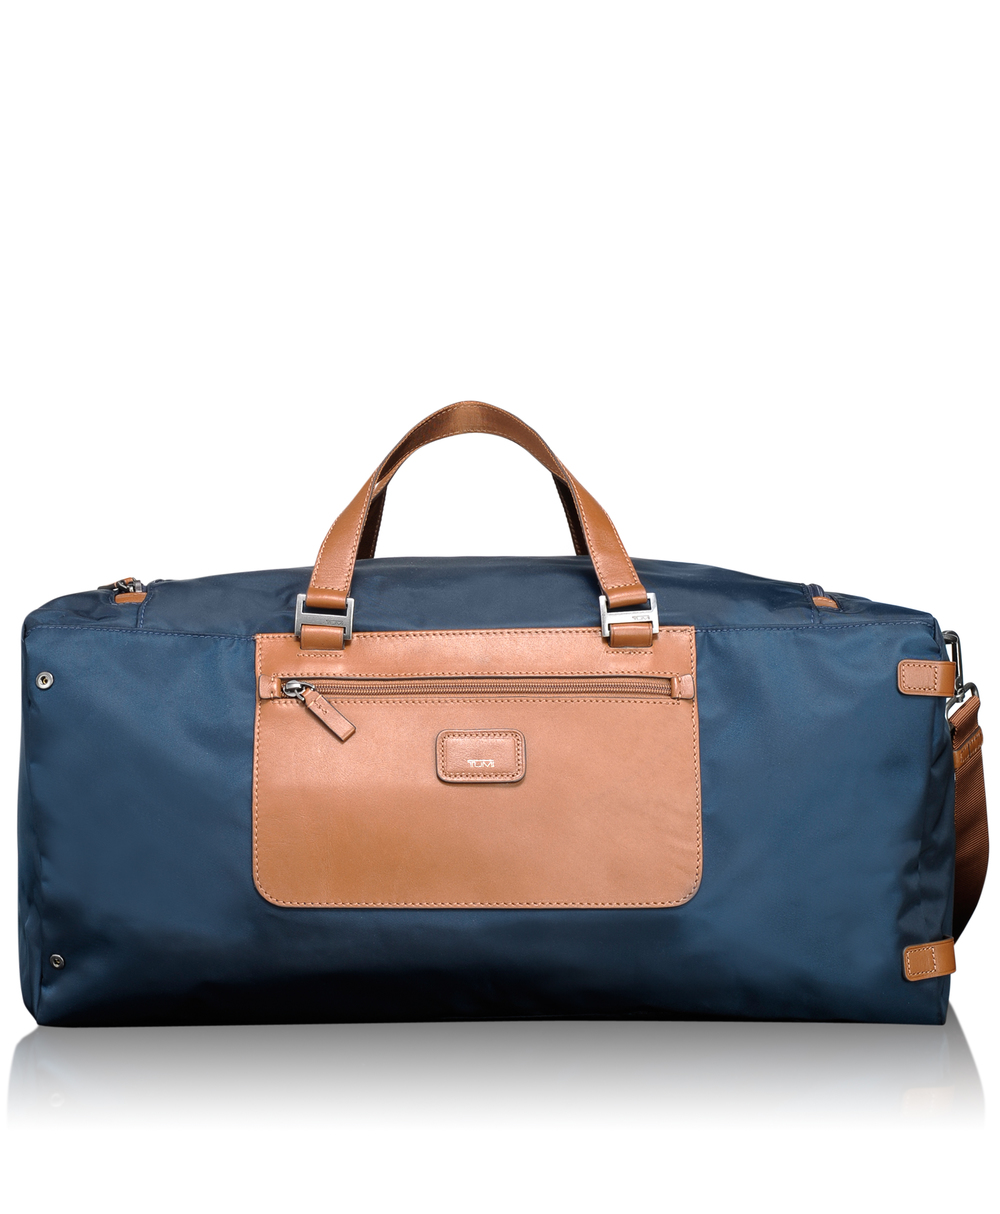 14841 Navy Pack A Way Medium Duffel.jpg